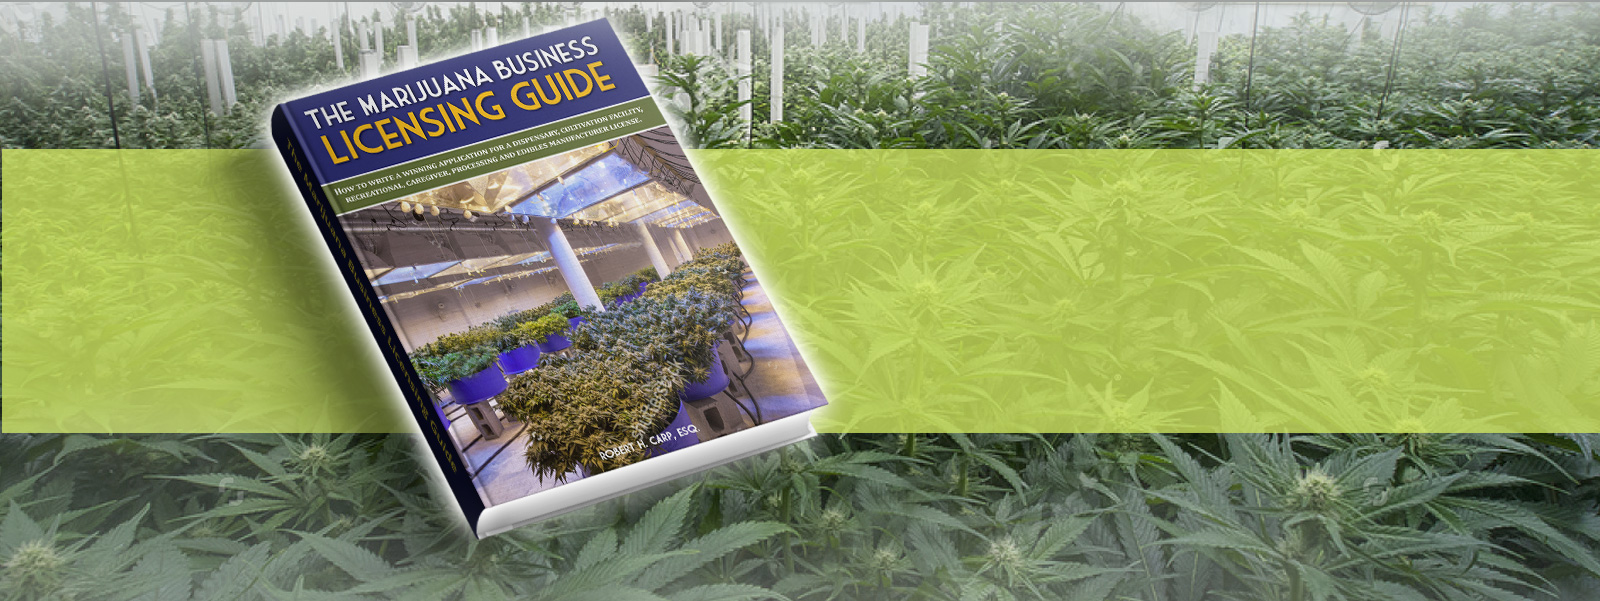 marijuana-business-licensing-guide-new